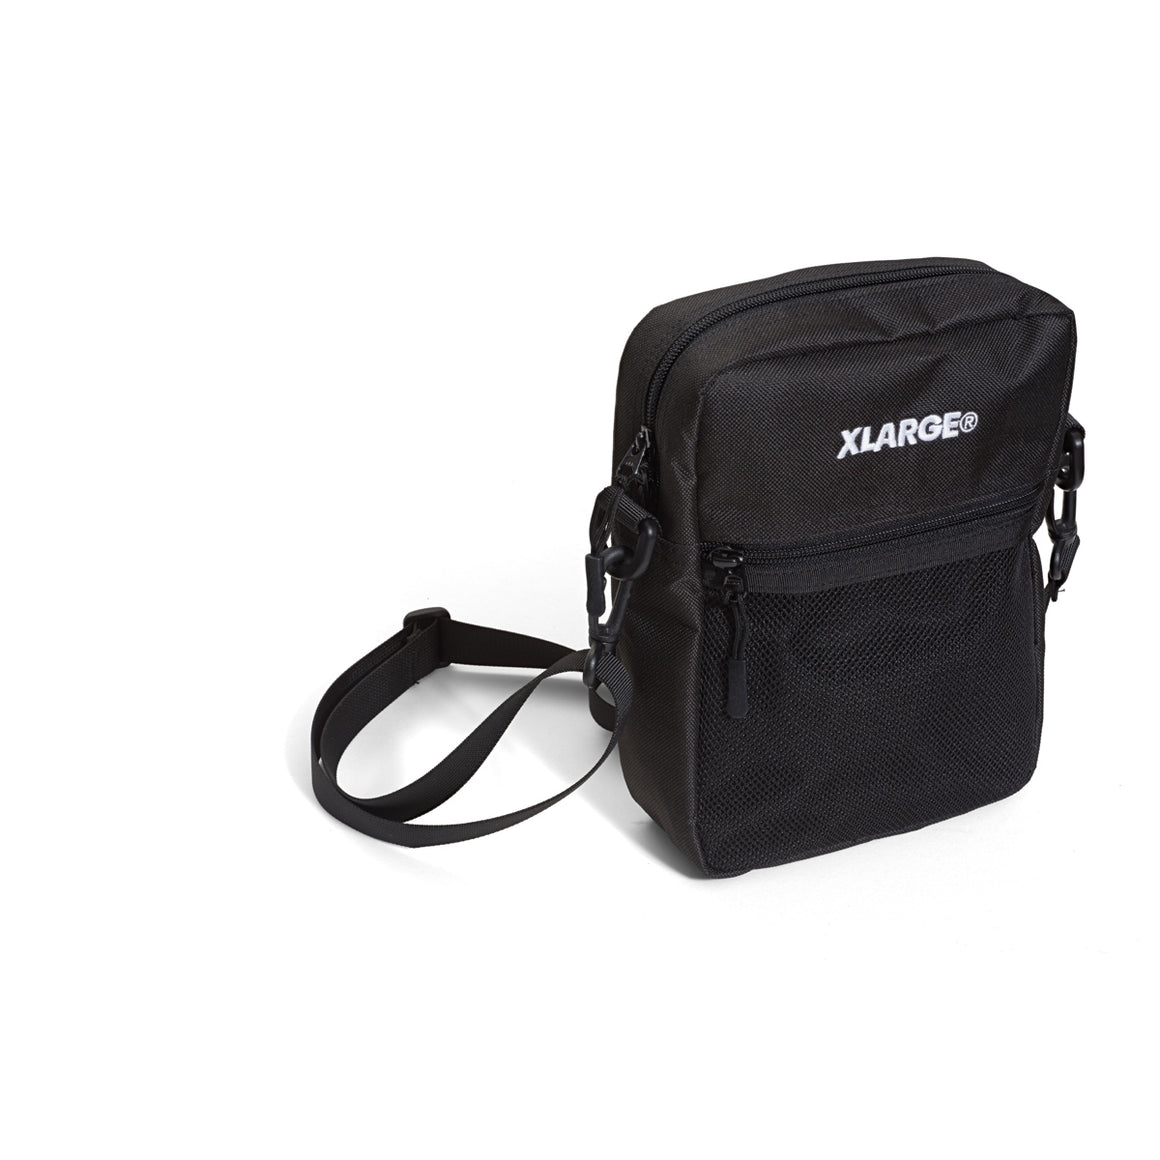 OG Shoulder bag, Accessories  - XLarge Brand